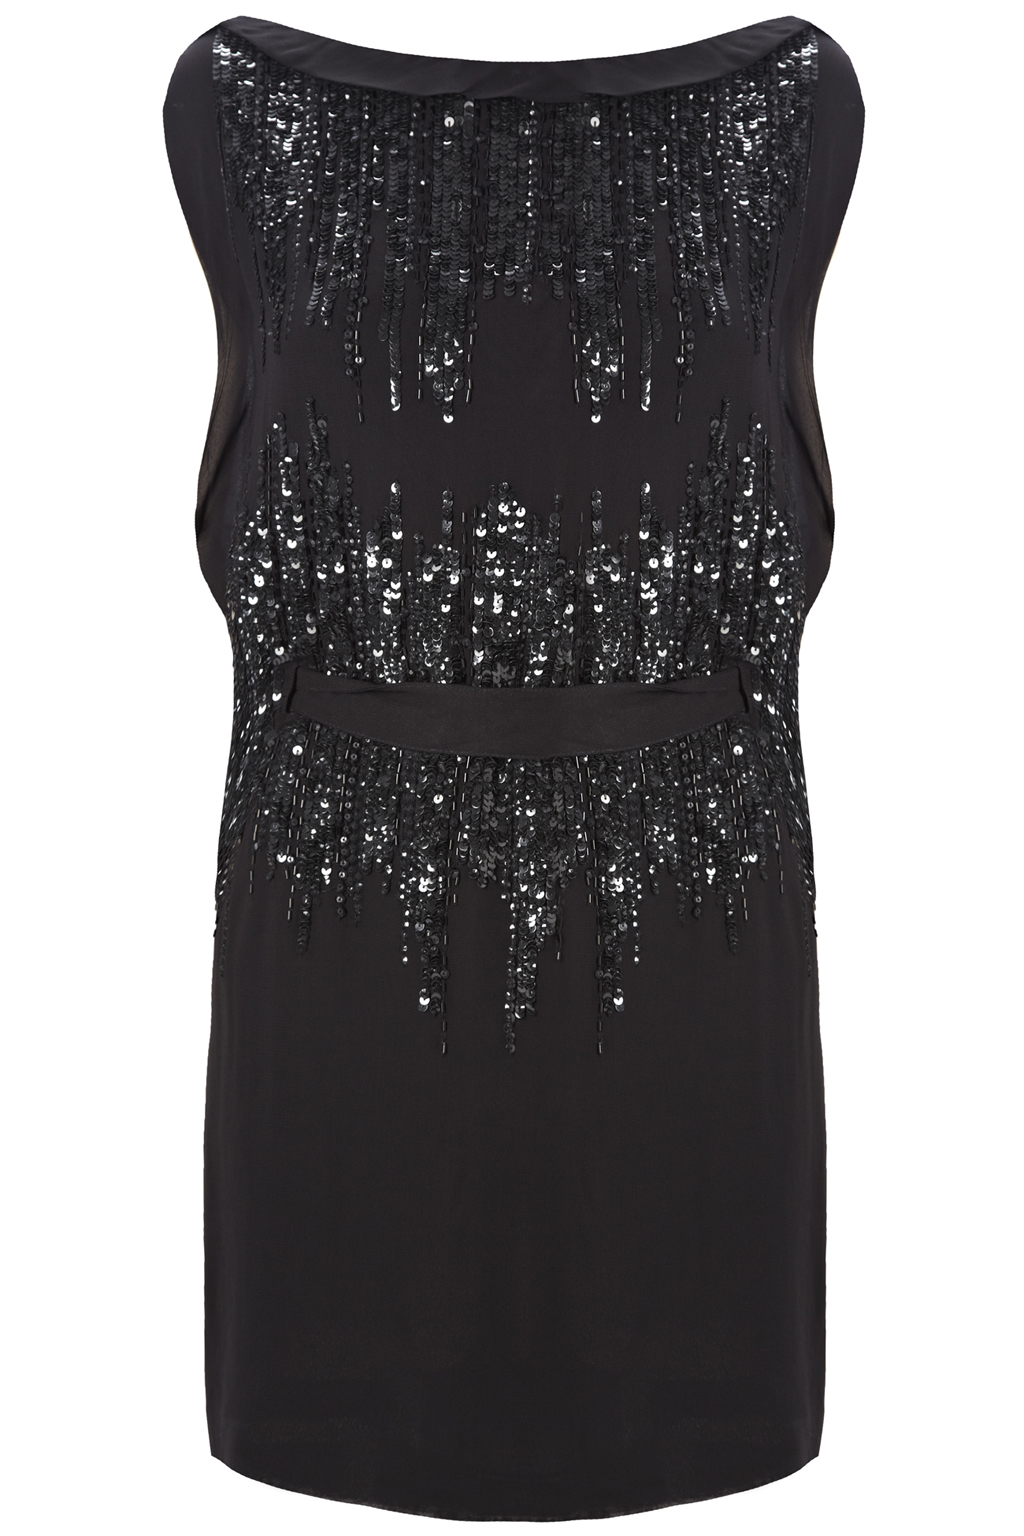 7c34b78adb5 French Connection Silver Simmons Sequin Dress in Gray - Lyst